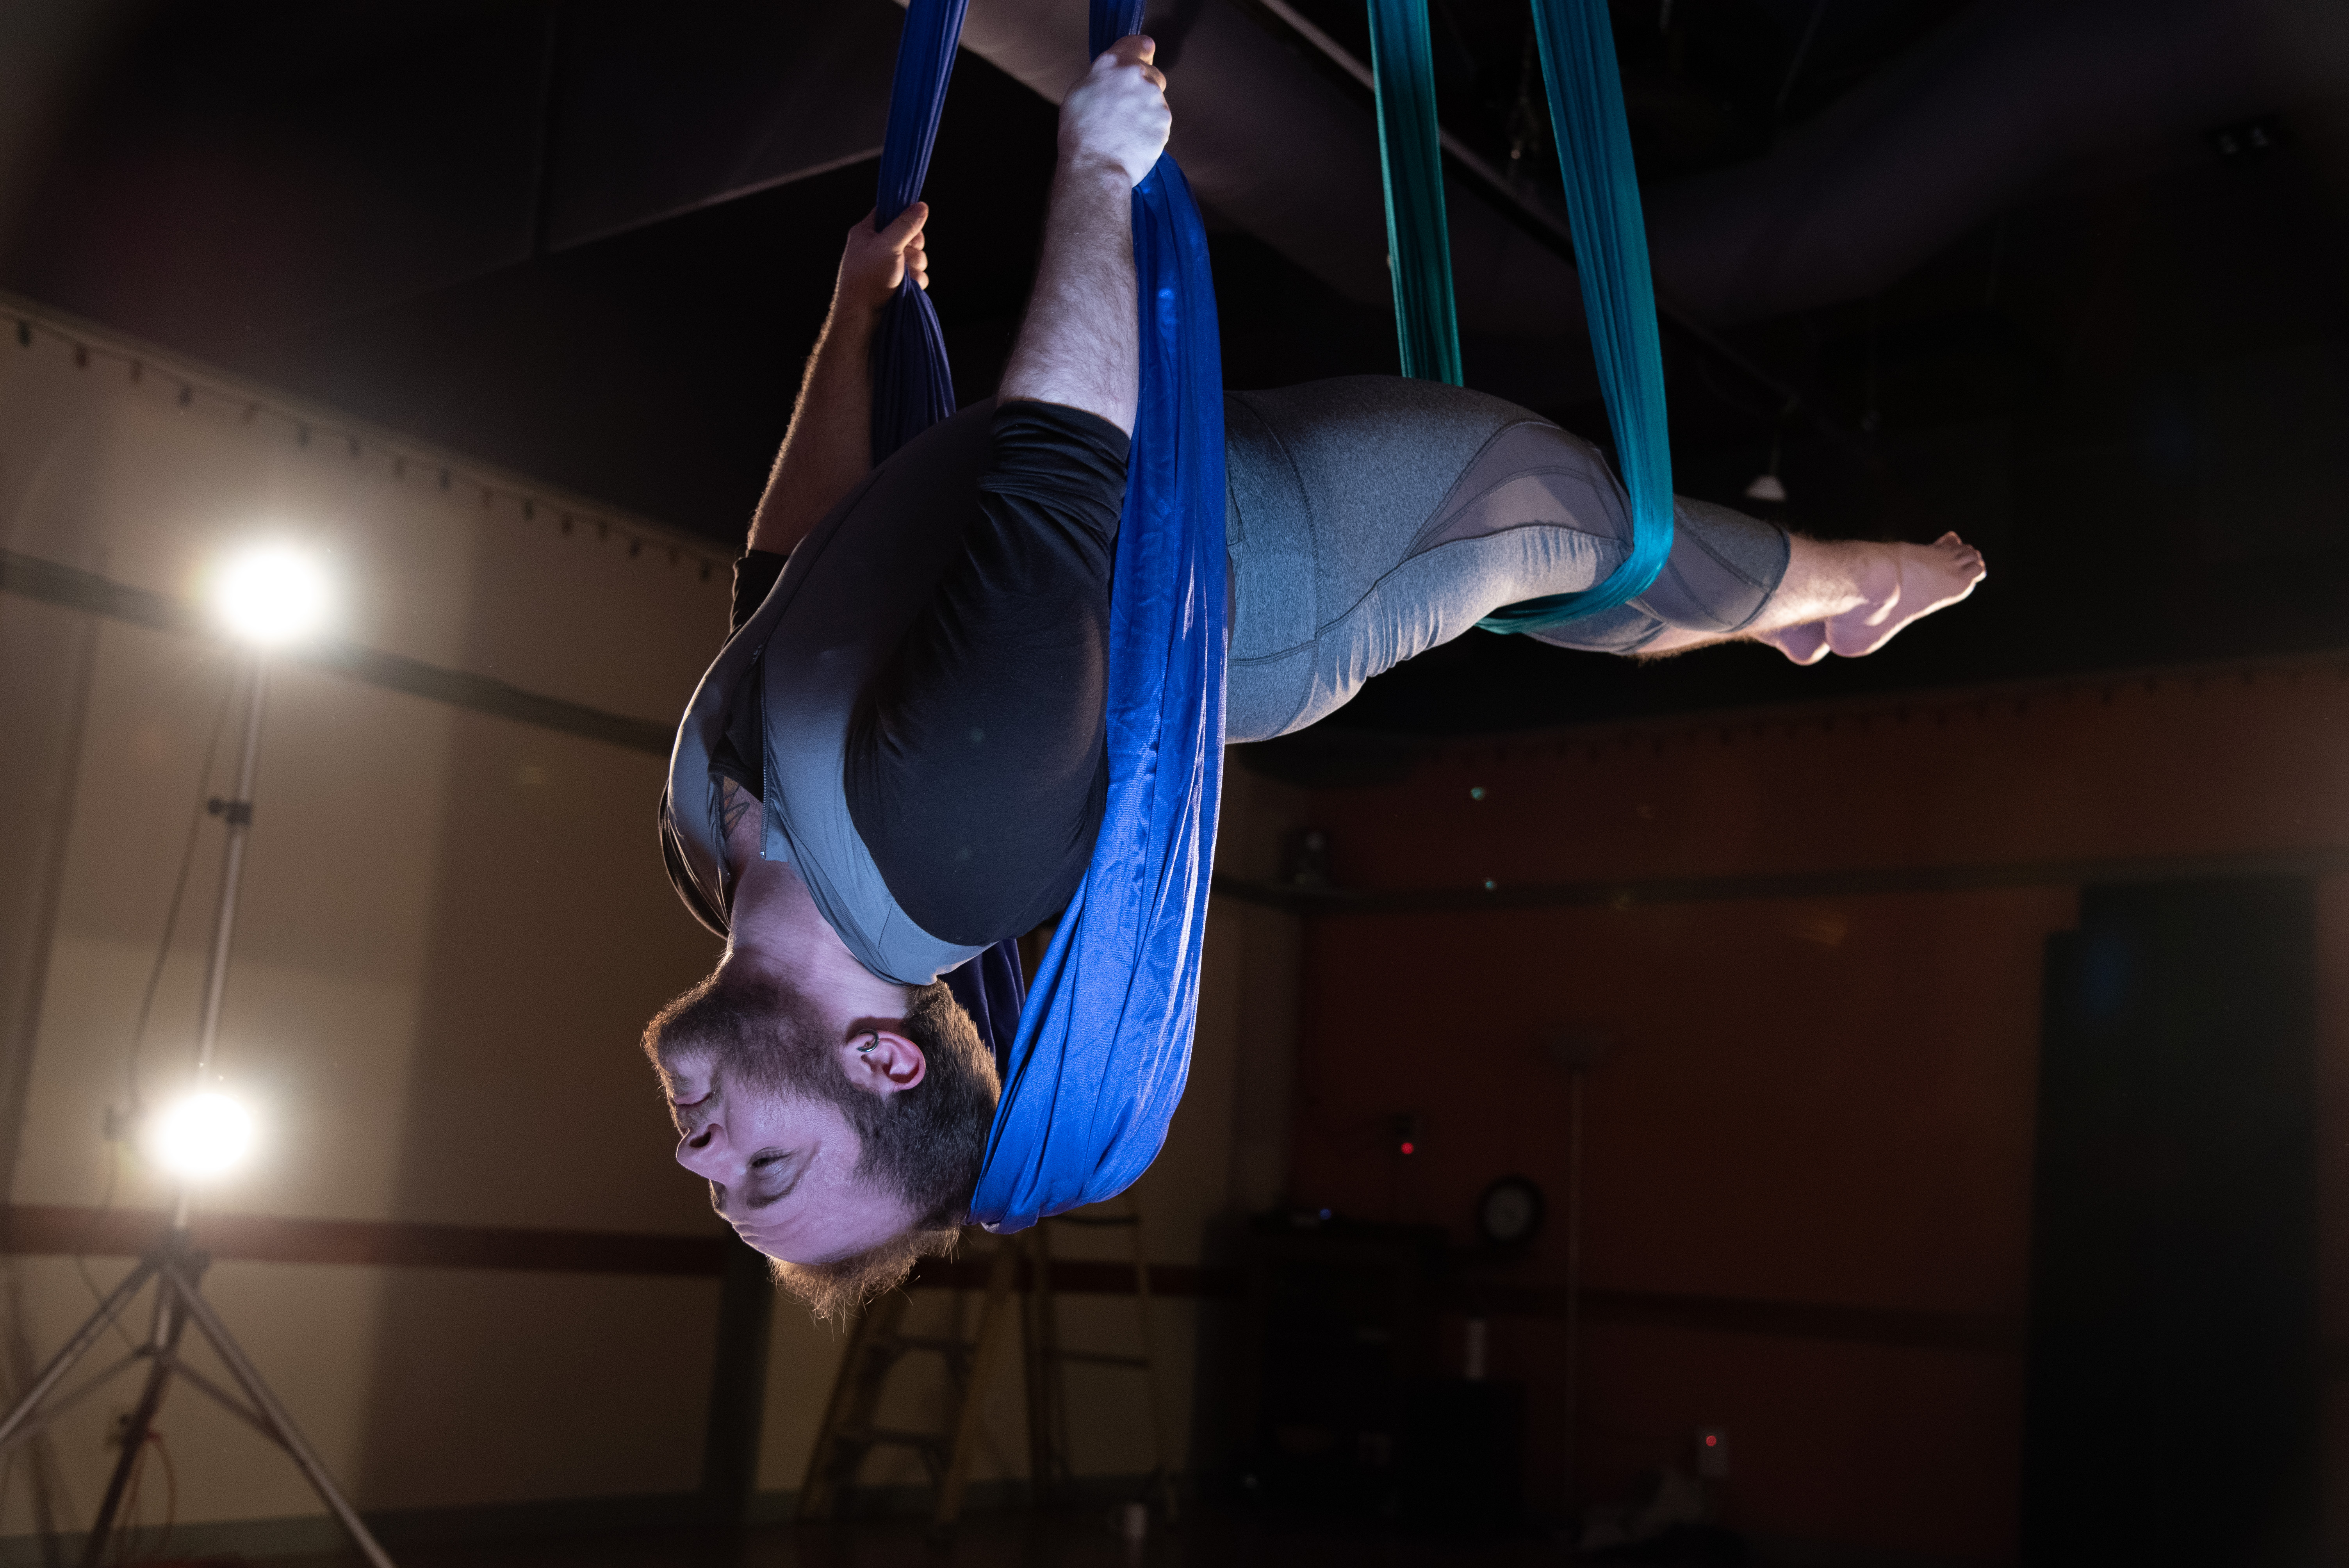 Toby, with dark beard and in grey leggings and long-sleeved leotard, hangs upside down on two aerial fabrics in a shadowy studio. Their legs and lower back are horizontal, and their upper back arches to show their face, eyes closed, relaxed.